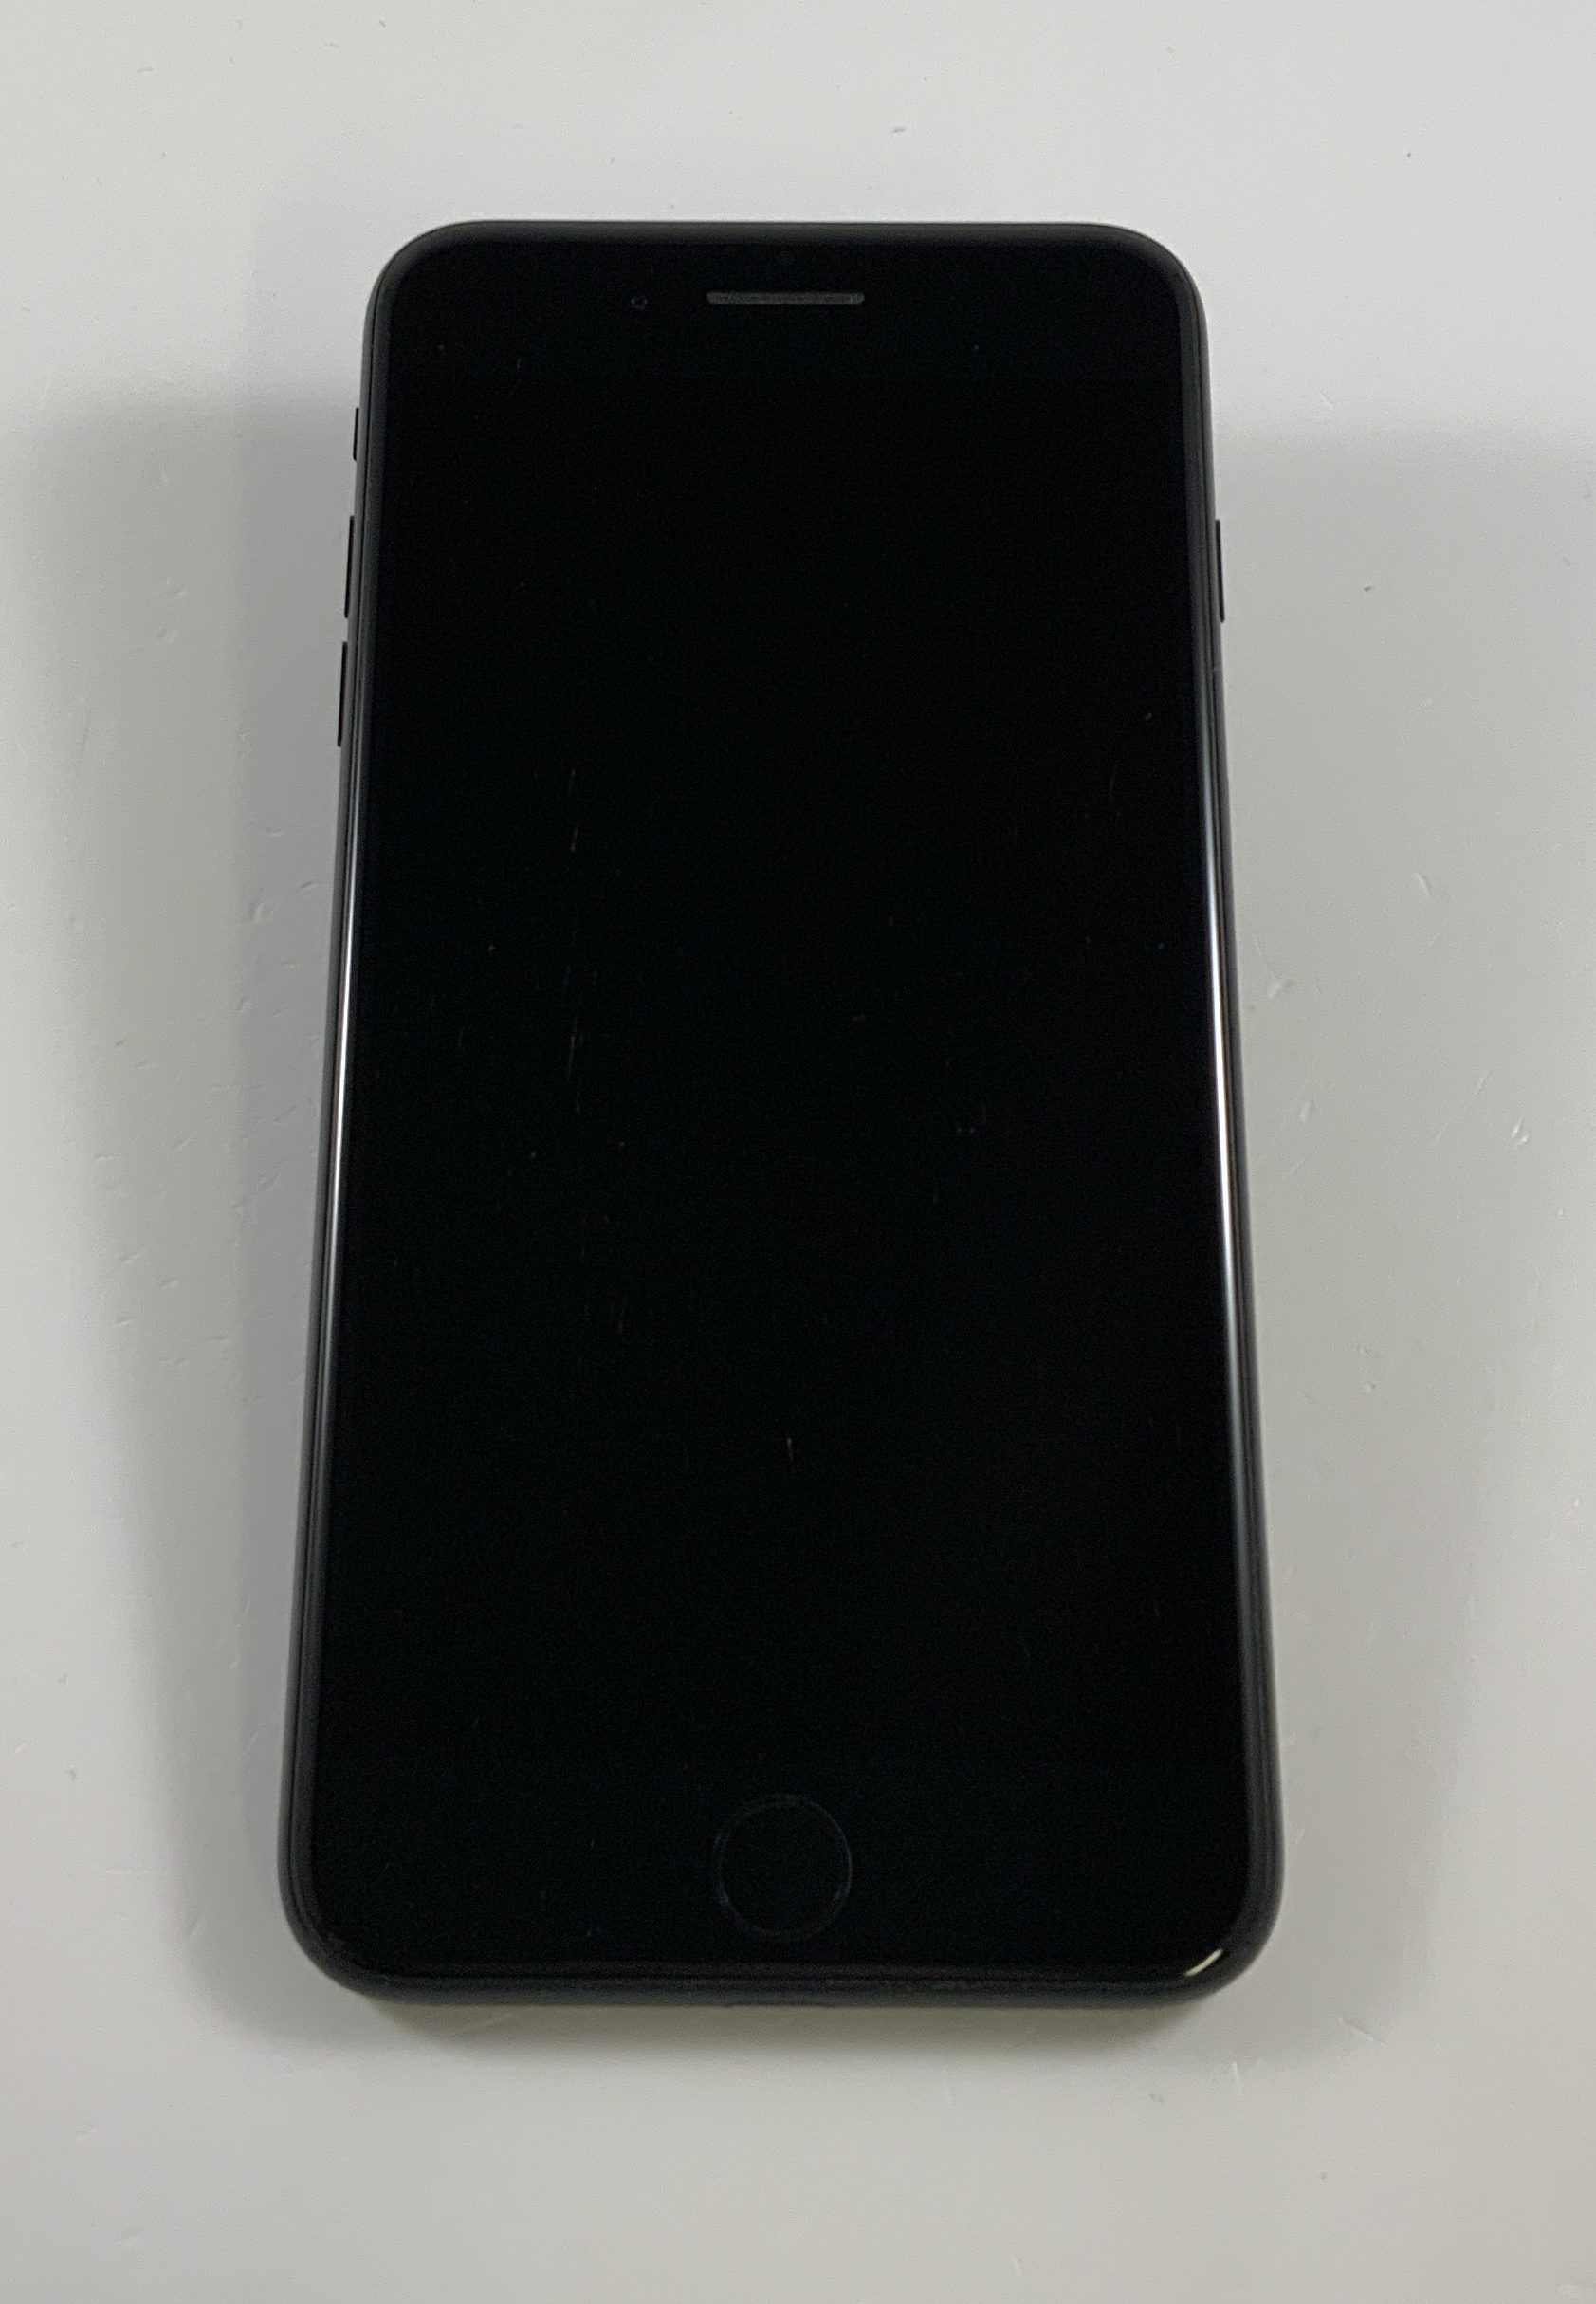 iPhone 7 Plus 32GB, 32GB, Black, Afbeelding 1